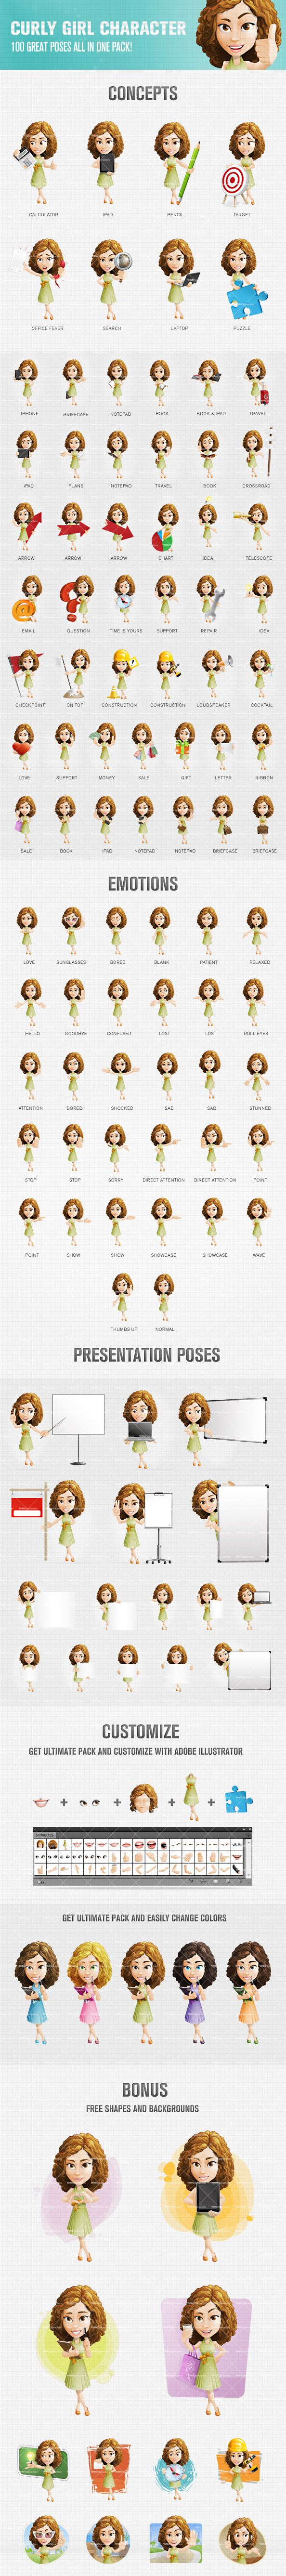 Curly girl cartoon character set created in 100 poses and moods that will fit to a wide range of purposes. Use this cartoon character to liven up your projects. Continue reading →